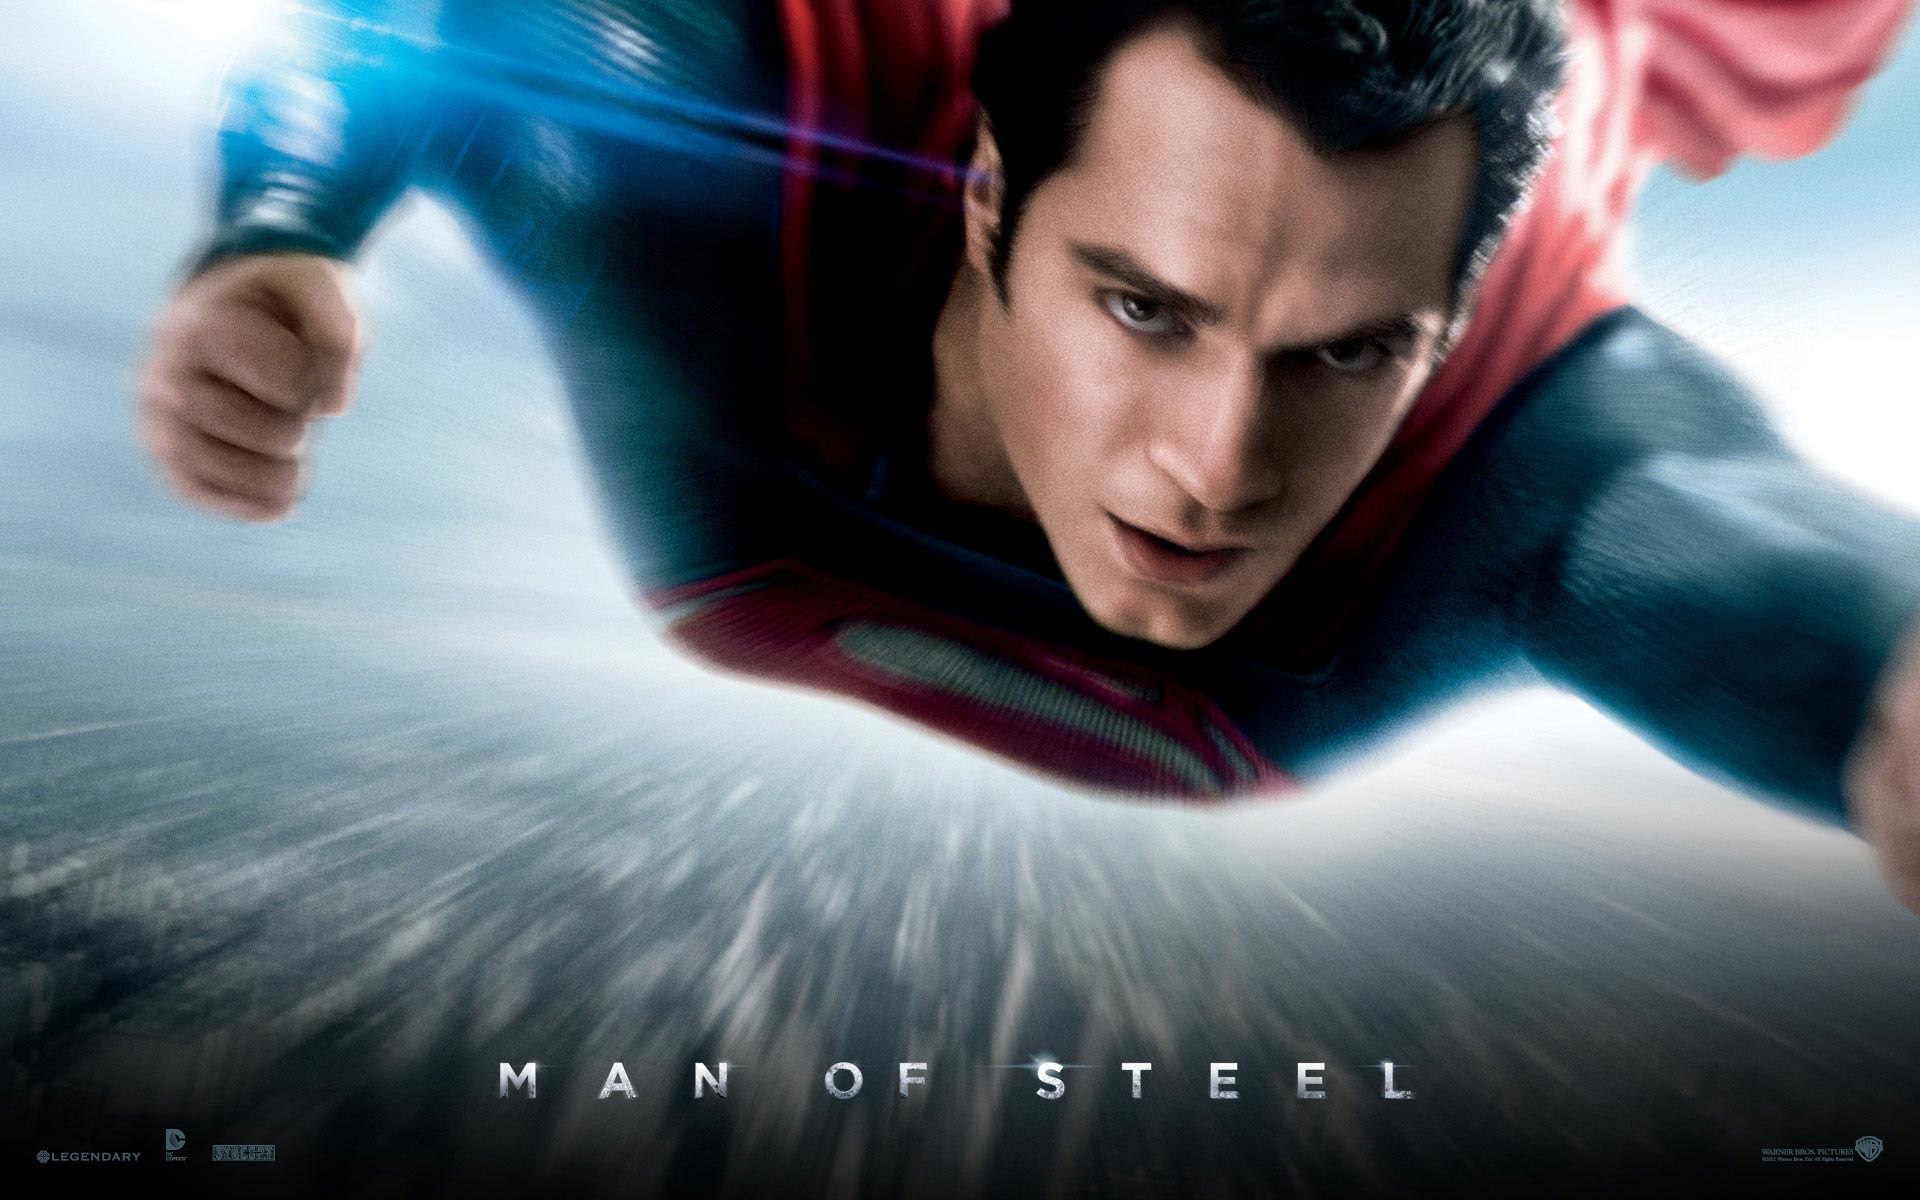 Man of Steel Summer 2013 In Review: The Best, And The Rest